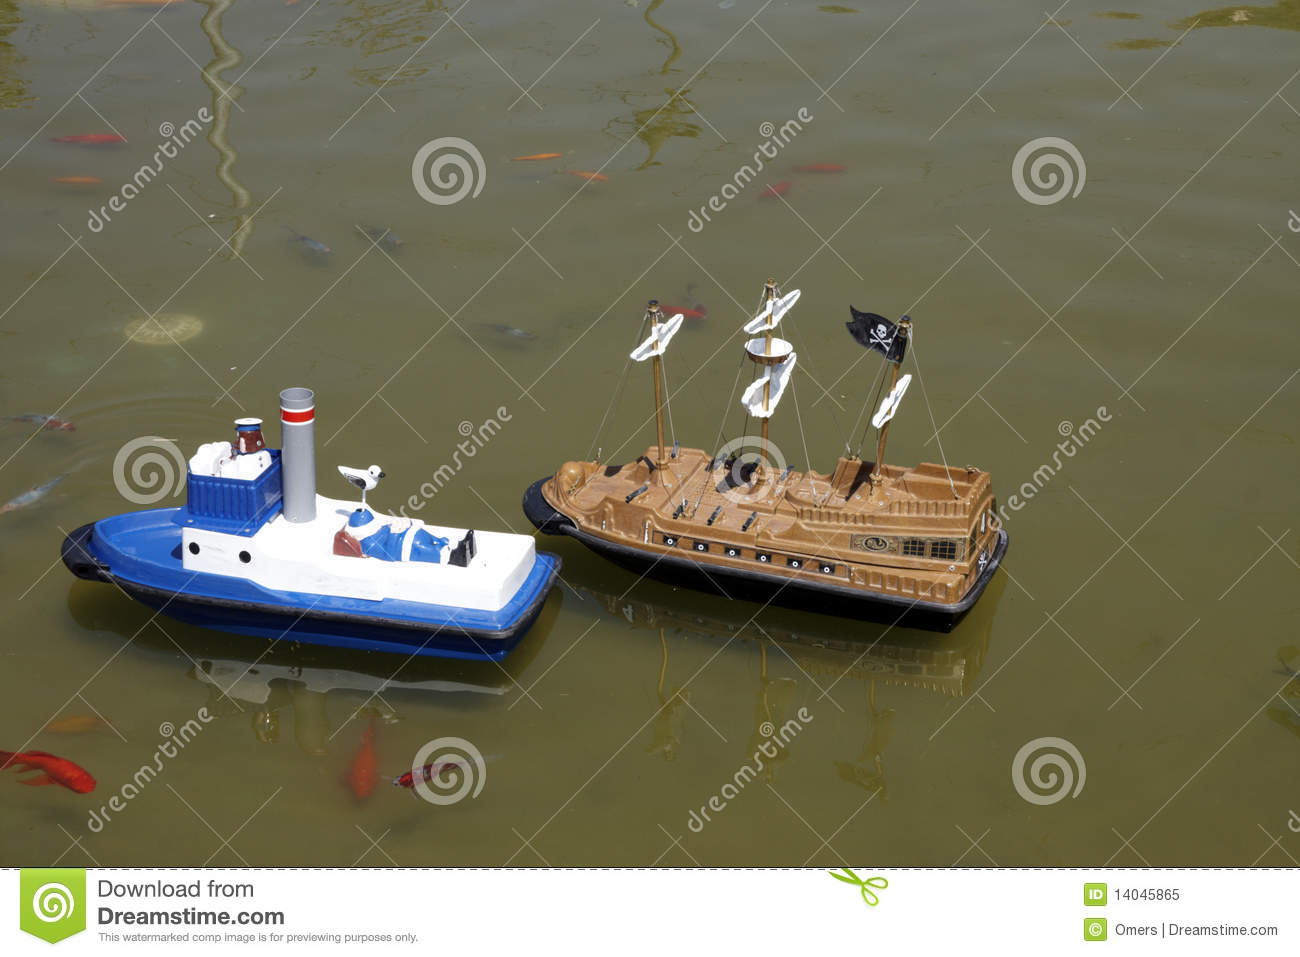 Toy boats stock image. Image of life, nature, competition - 14045865